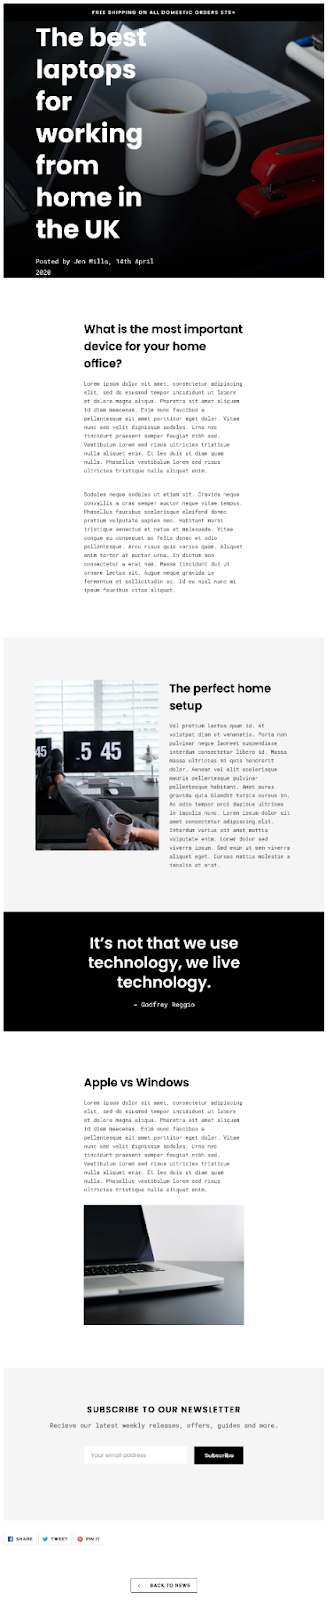 blog post page template shogun page builder